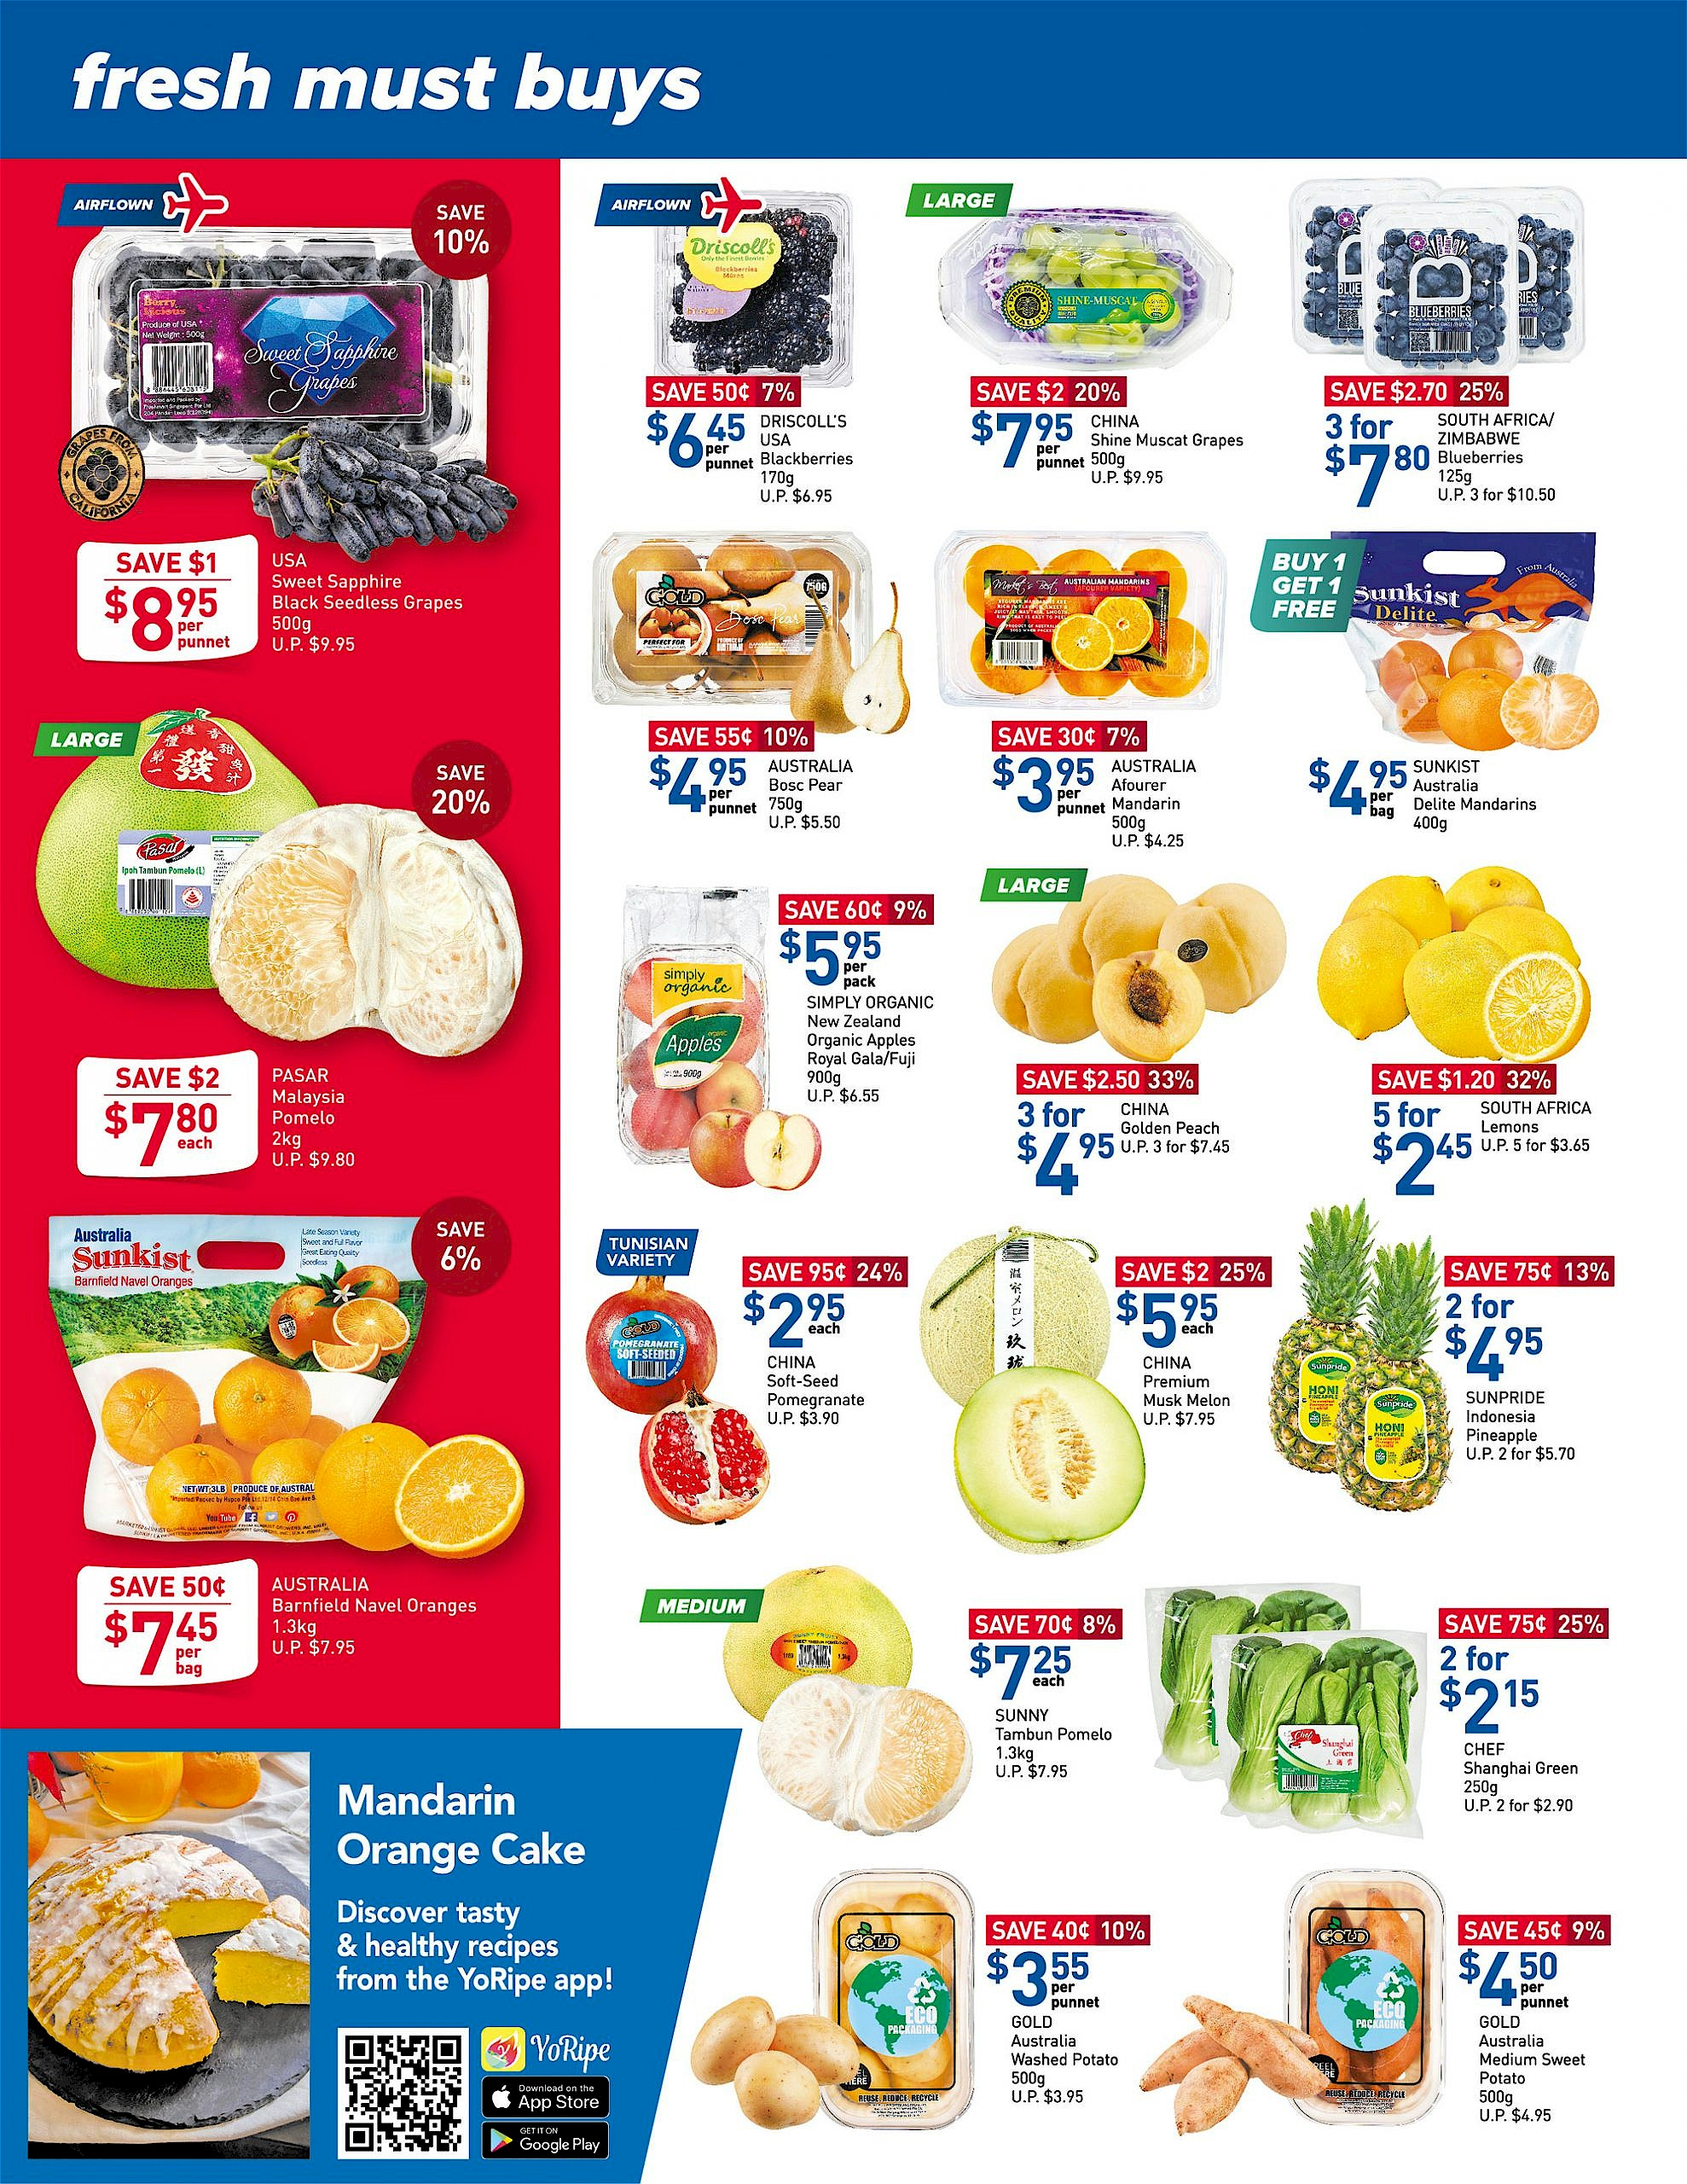 all-singapore-deals-Fairprice-Must-Buy-2